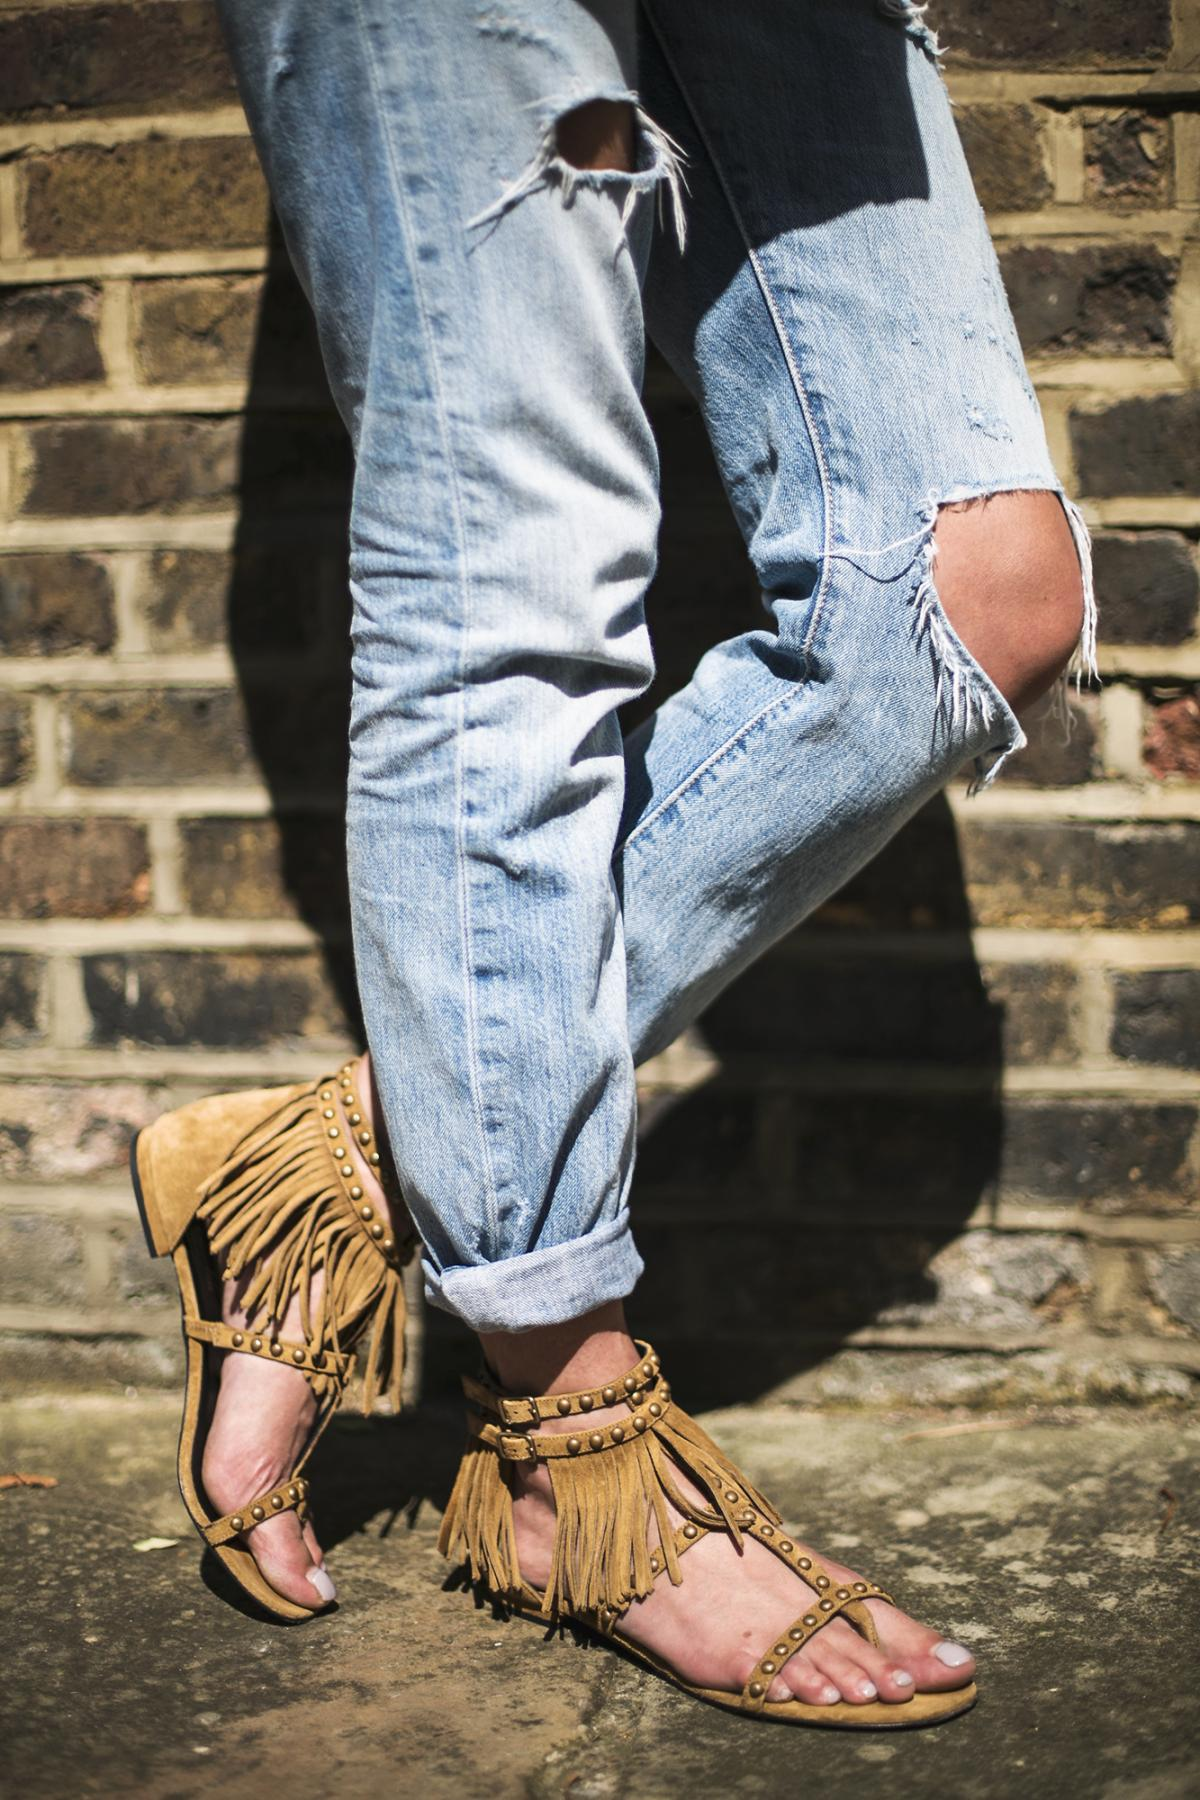 tan suede fringe saint laurent sandals, ripped boyfriend jeans